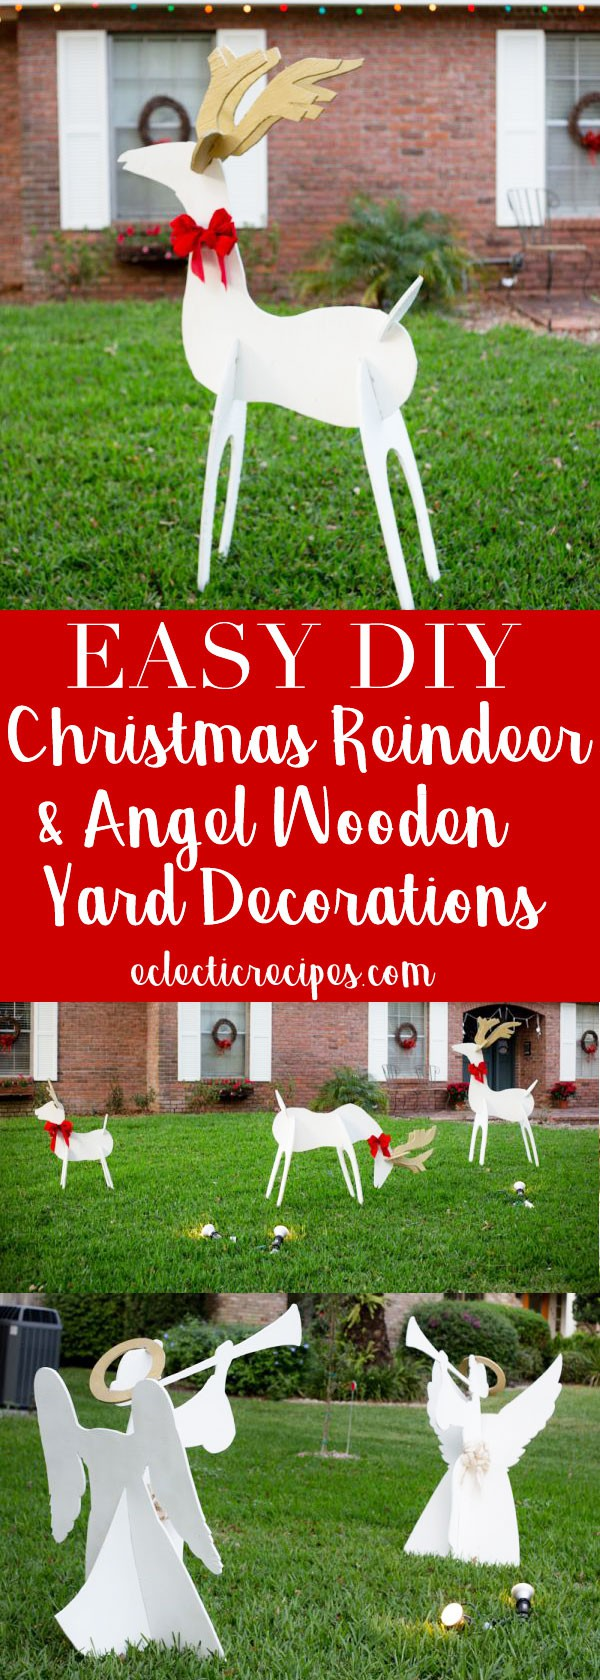 Christmas Reindeer and Angel Wooden Yard Decorations DIY #christmas #holiday #diy #craft #reindeer